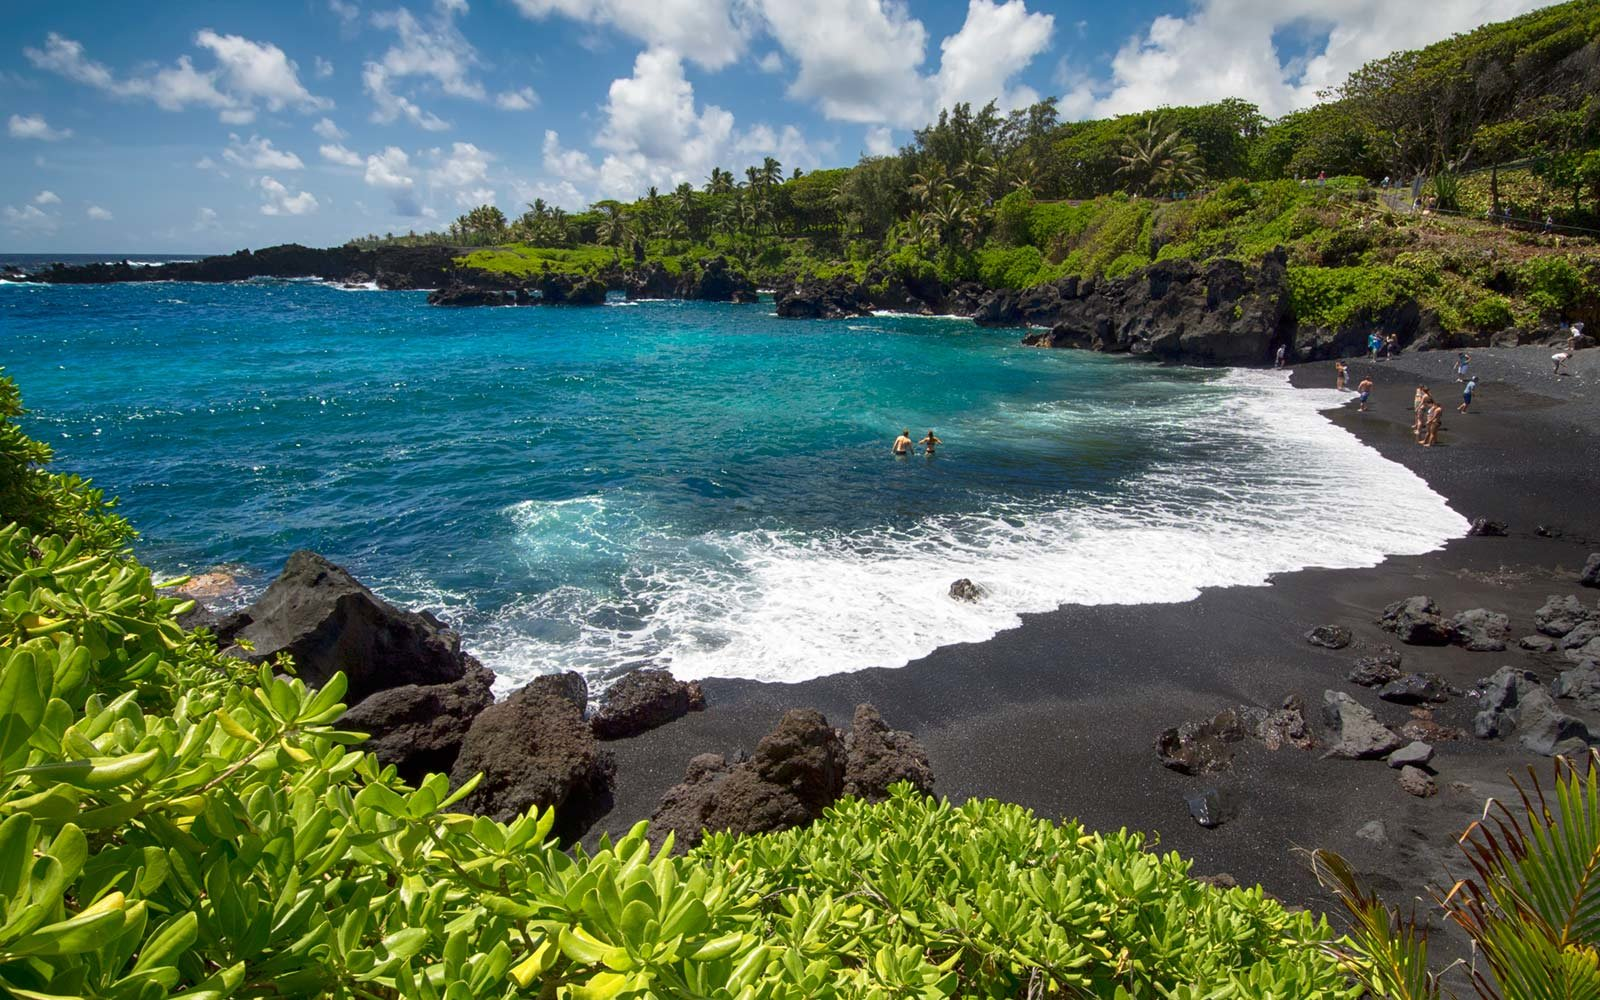 A Hawaiian Islands Guide Top Points of Interest Travel